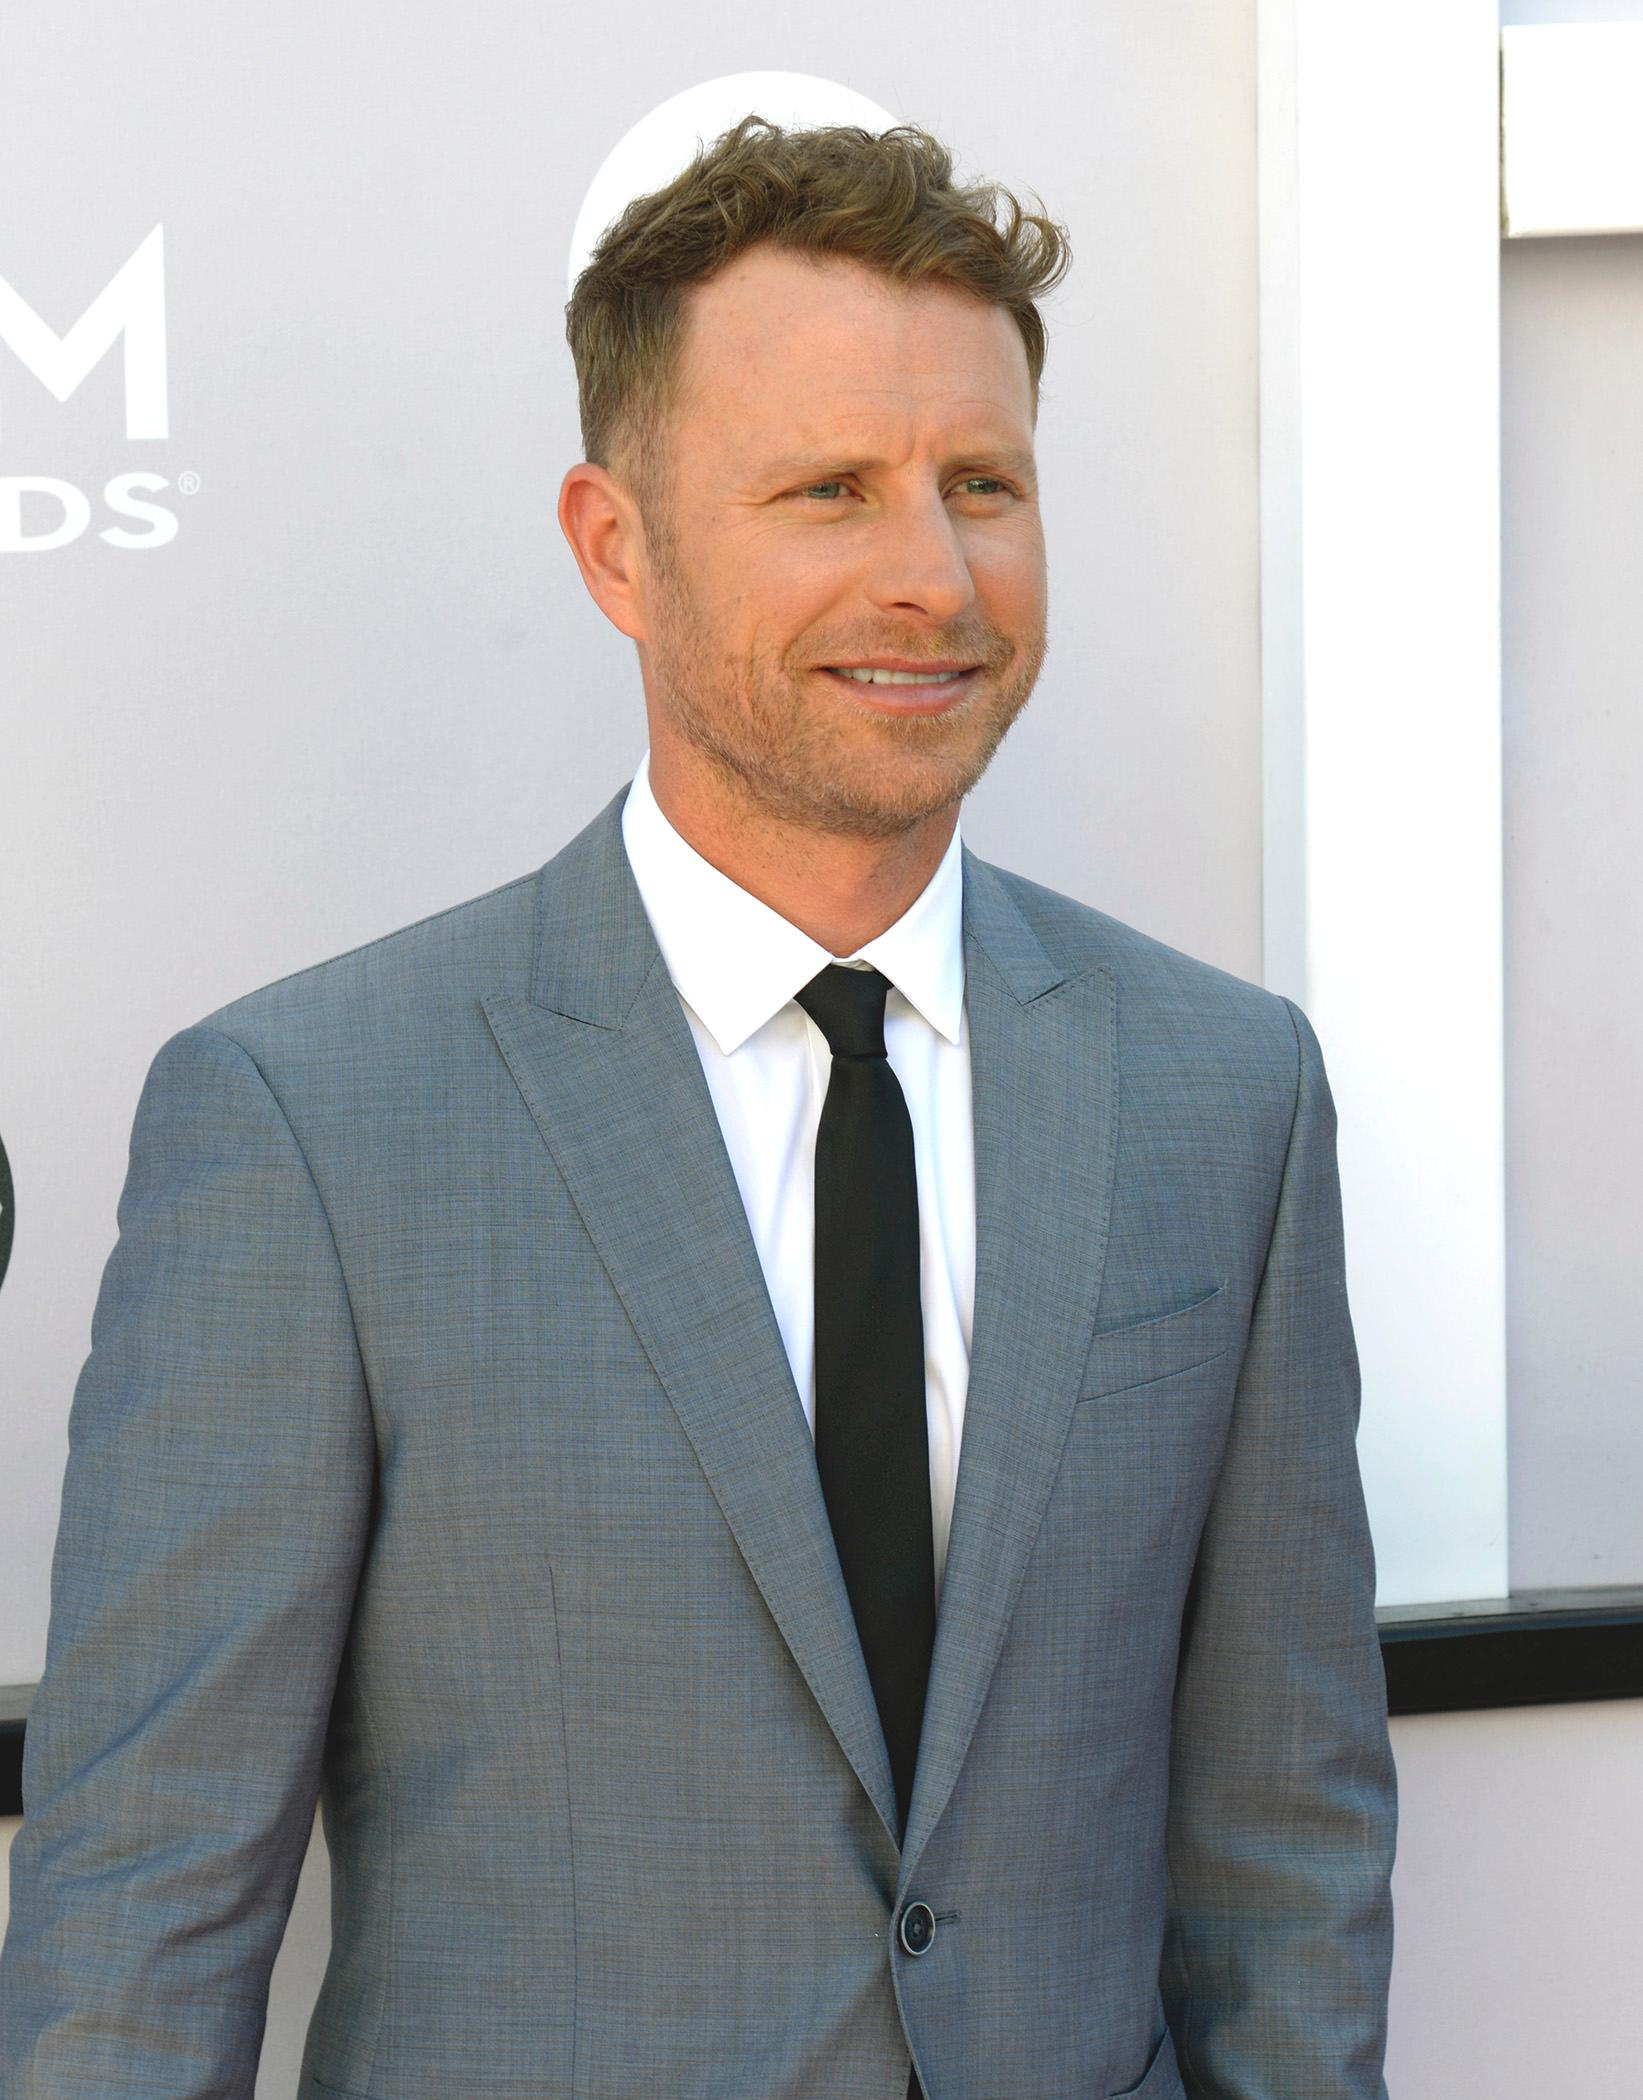 Dierks Bentley, host and nominee for Album of the Year, Male Vocalist of the Year and Vocal Event of the Year walks the Academy of Country Music Awards red carpet at T-Mobile Arena. Sunday, April 2, 2017. (Glenn Pinkerton/ Las Vegas News Bureau)